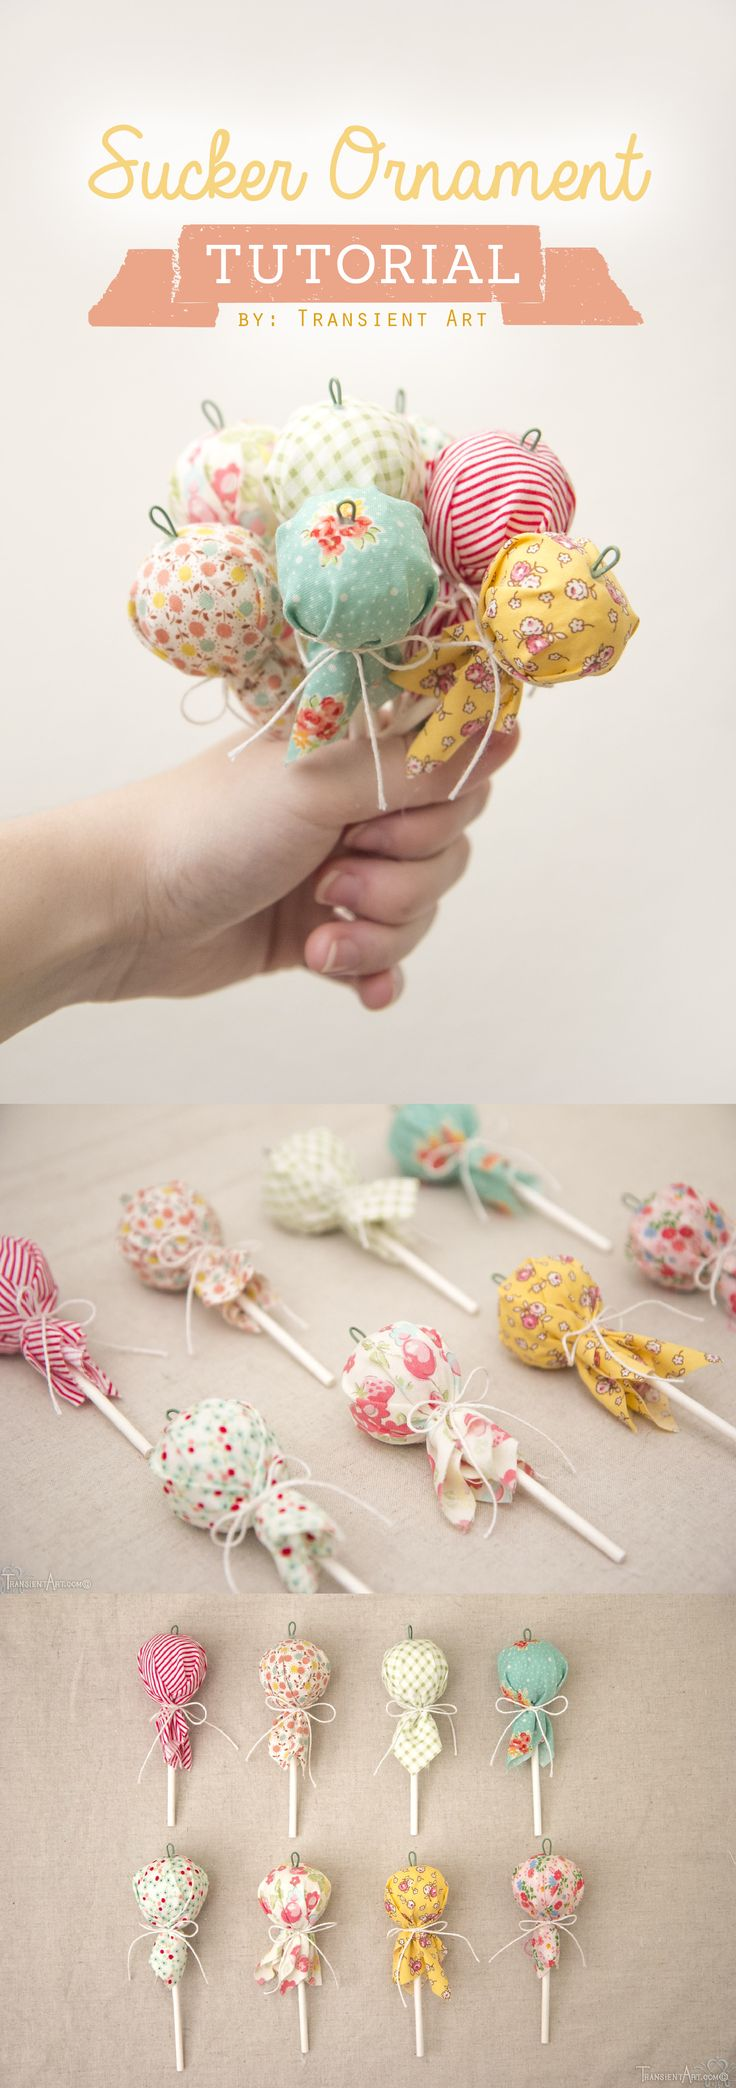 How to make ornaments that look like lollipops.